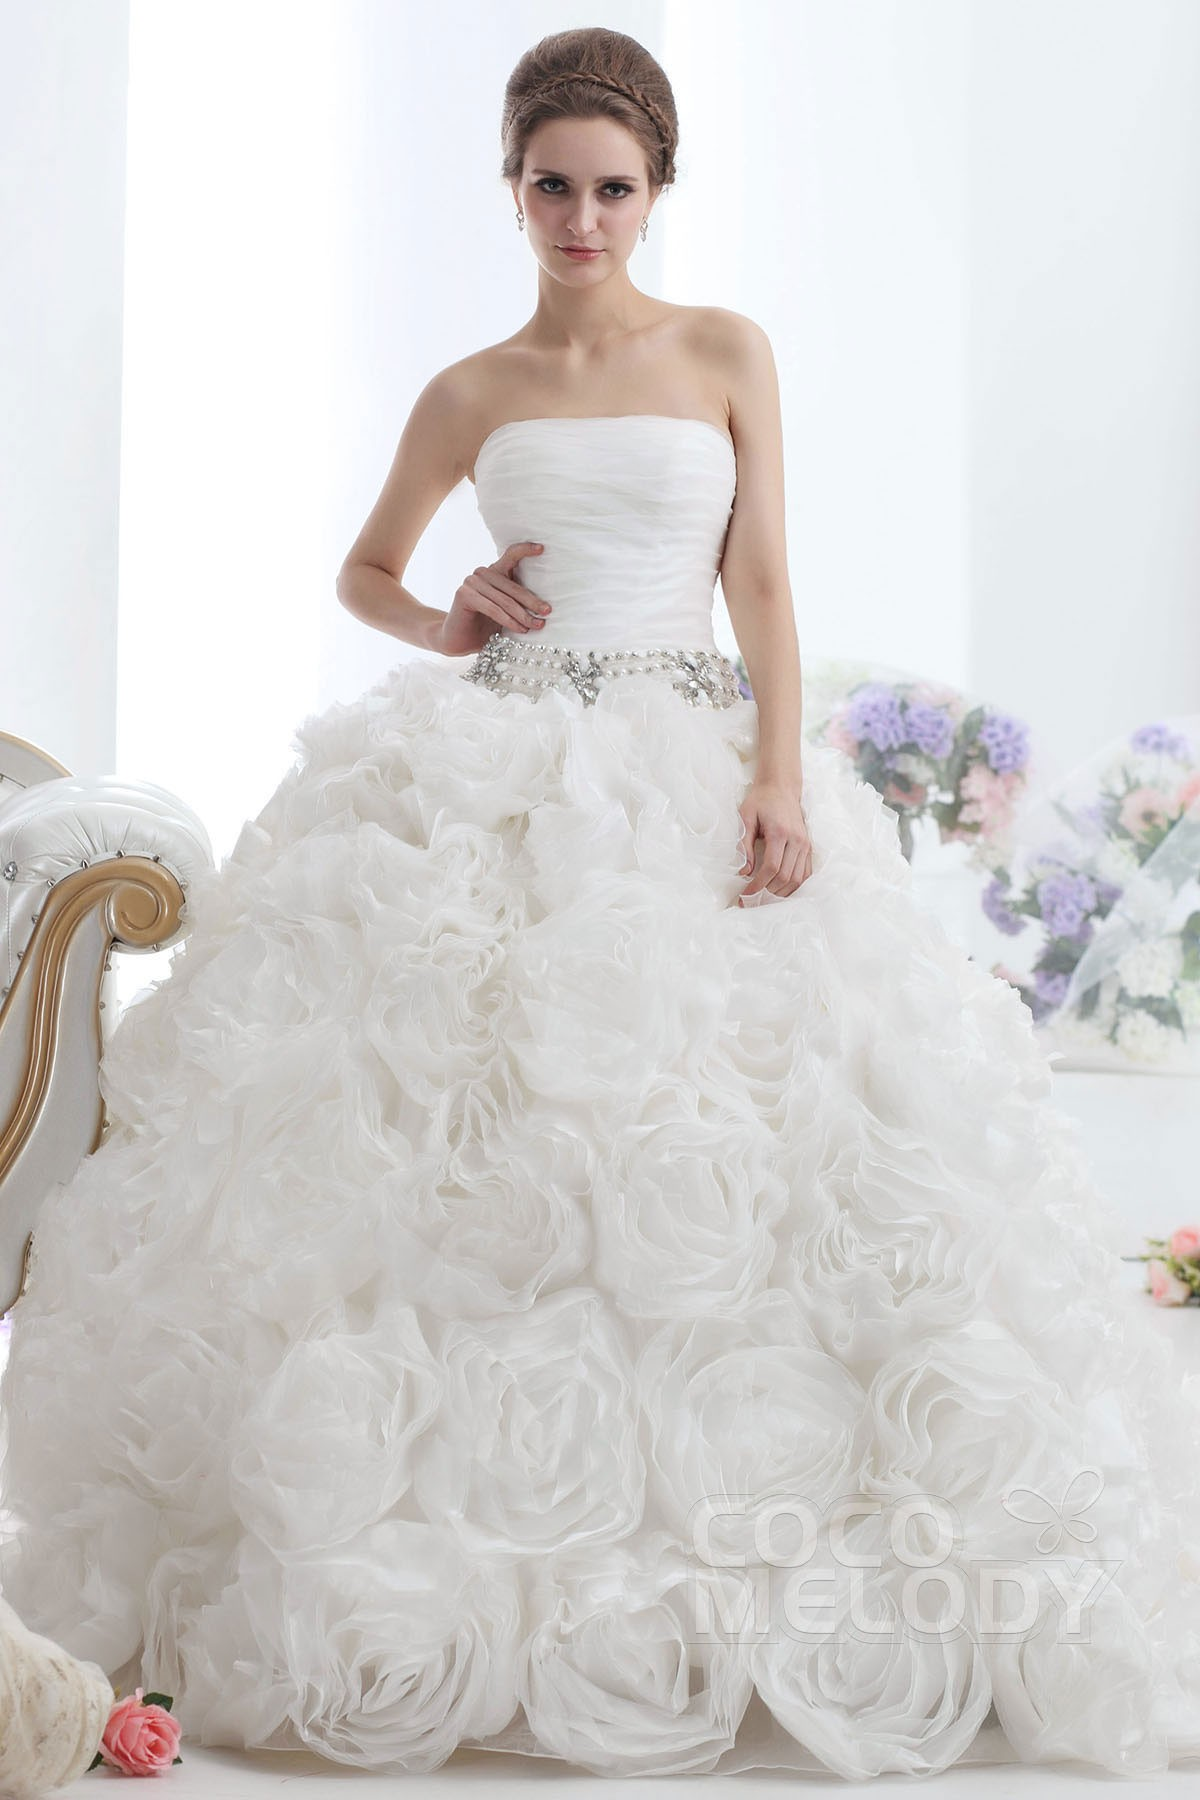 Strapless Wedding Dresses with Trains